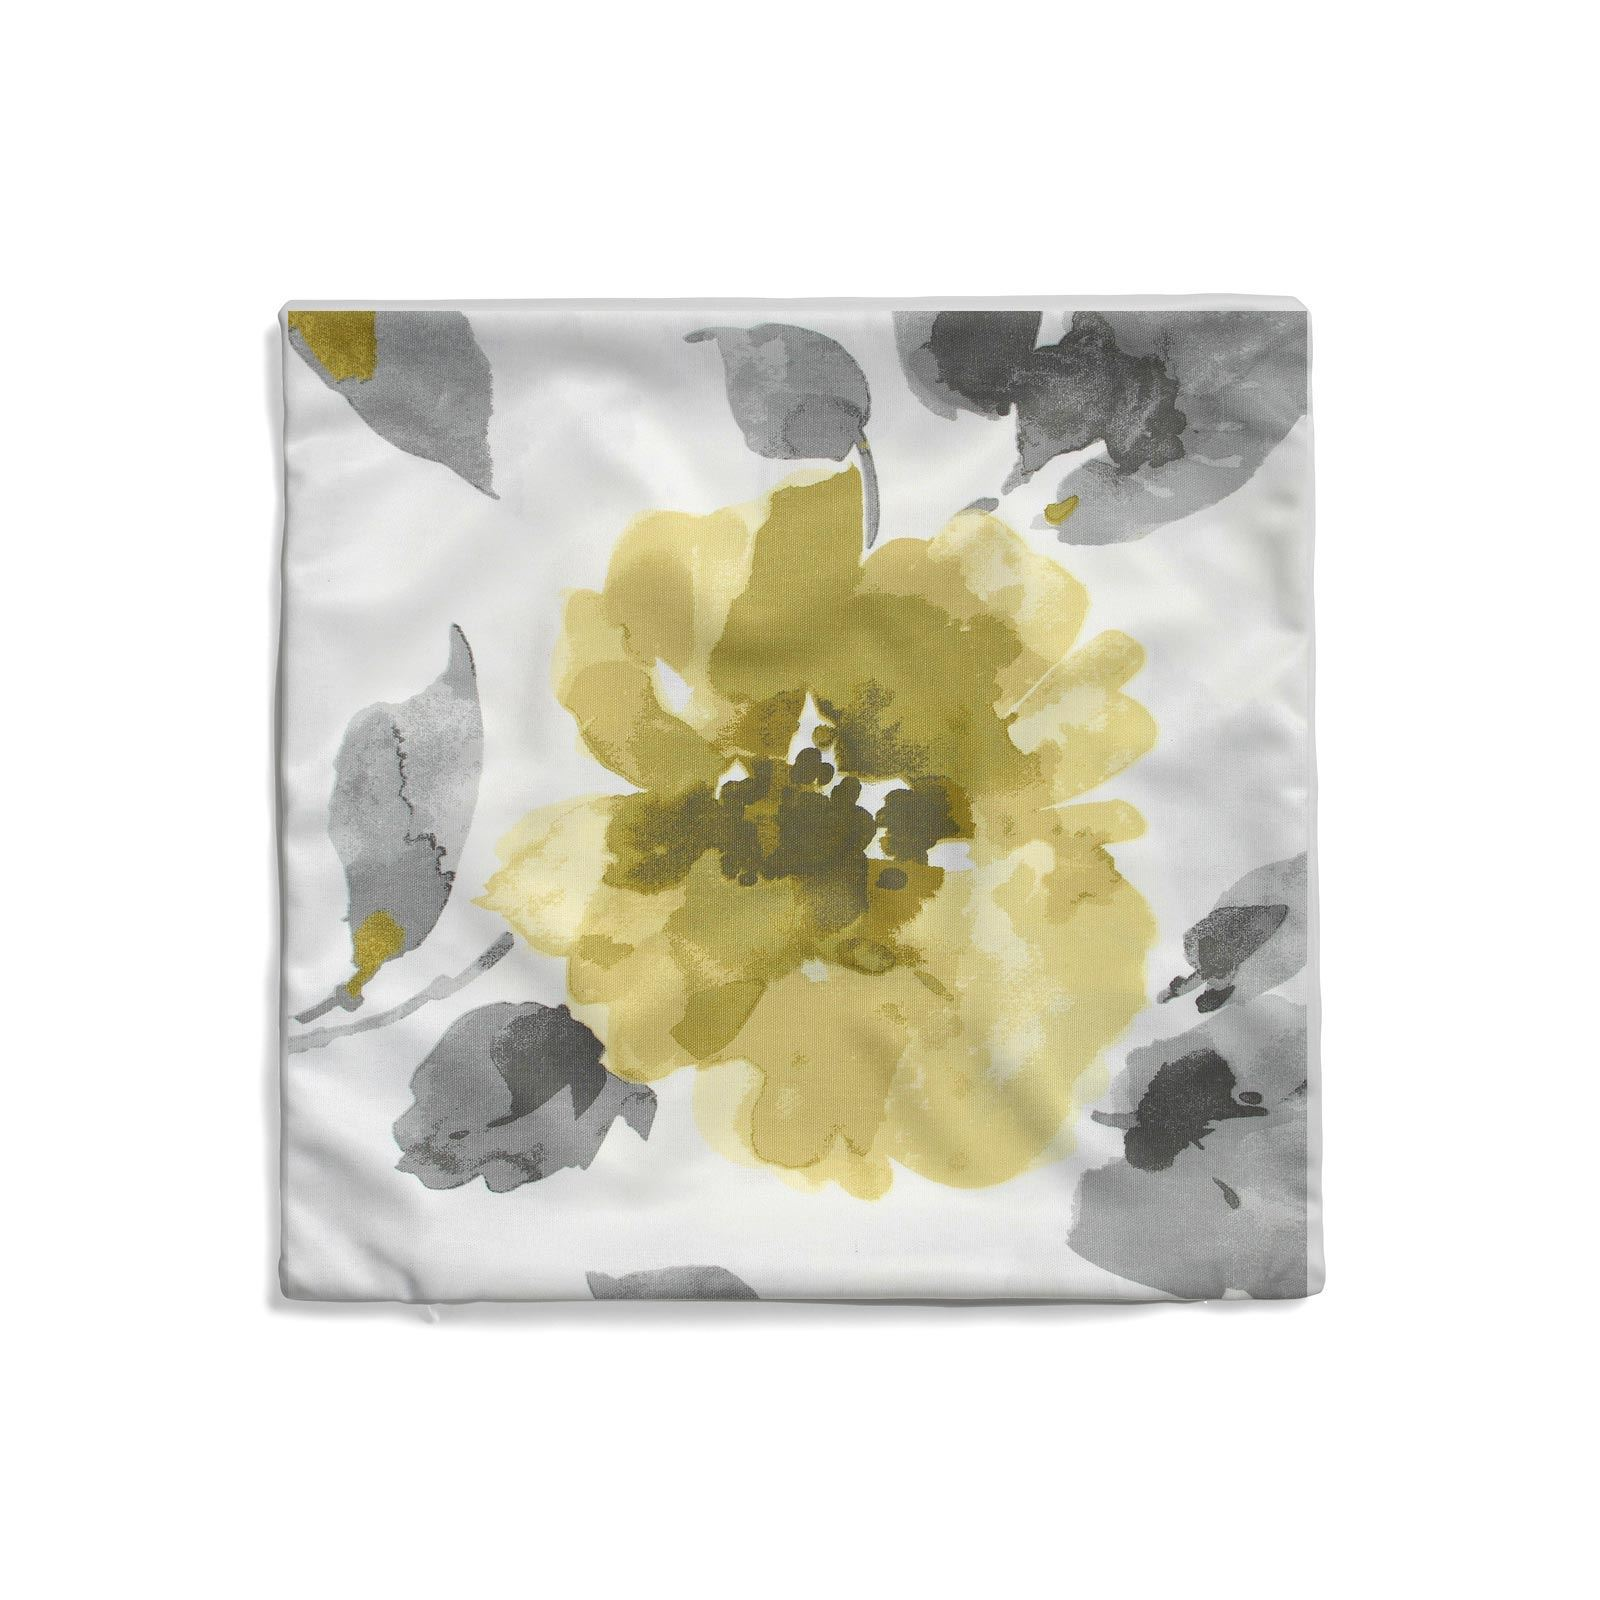 Grey-Ochre-Mustard-Cushion-Cover-Collection-17-034-18-034-Covers-Filled-Cushions thumbnail 16